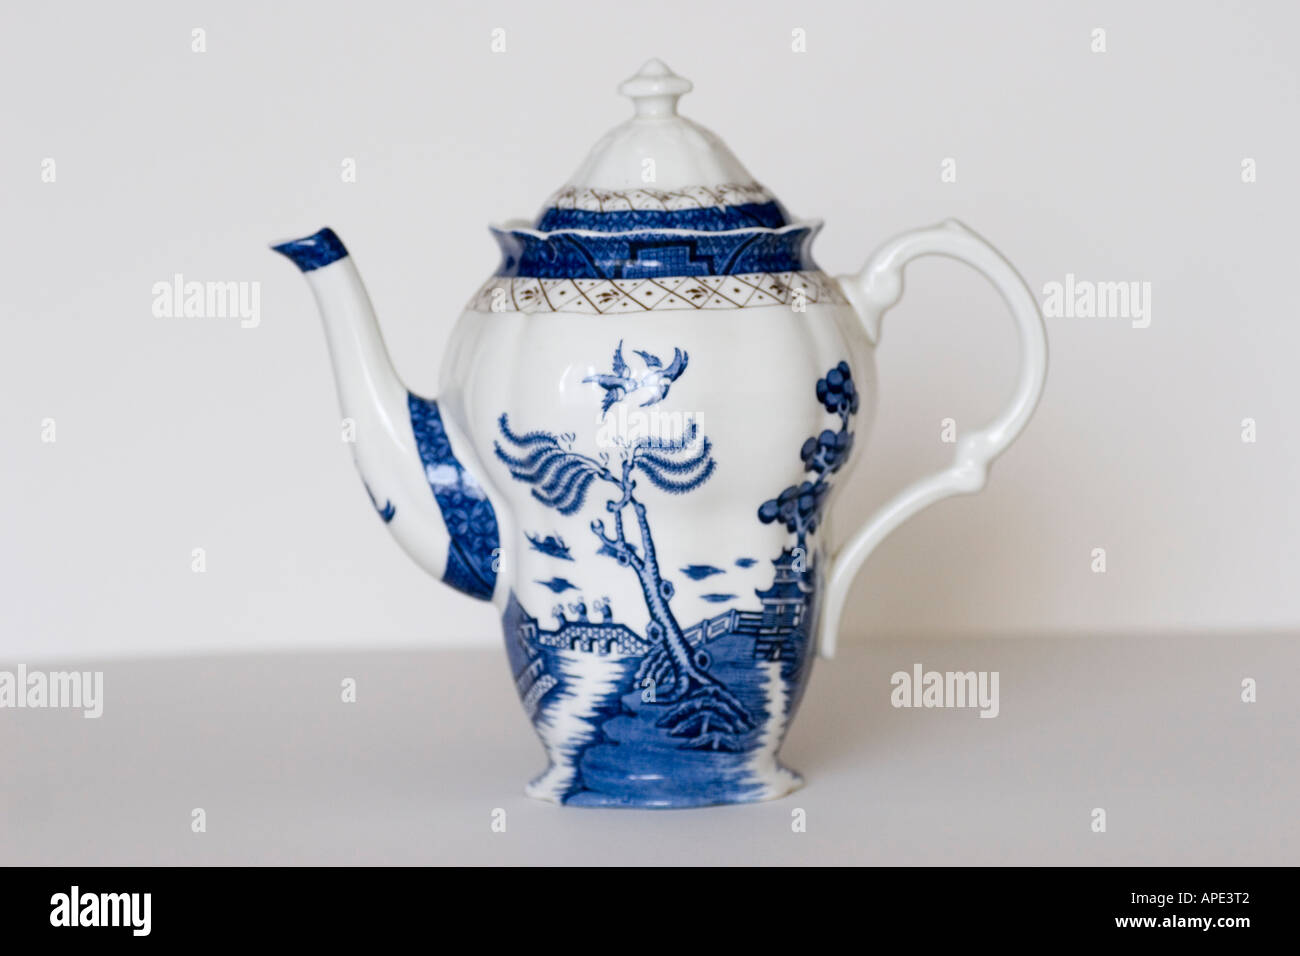 Booths China Coffee pot made in England GB UK - Stock Image